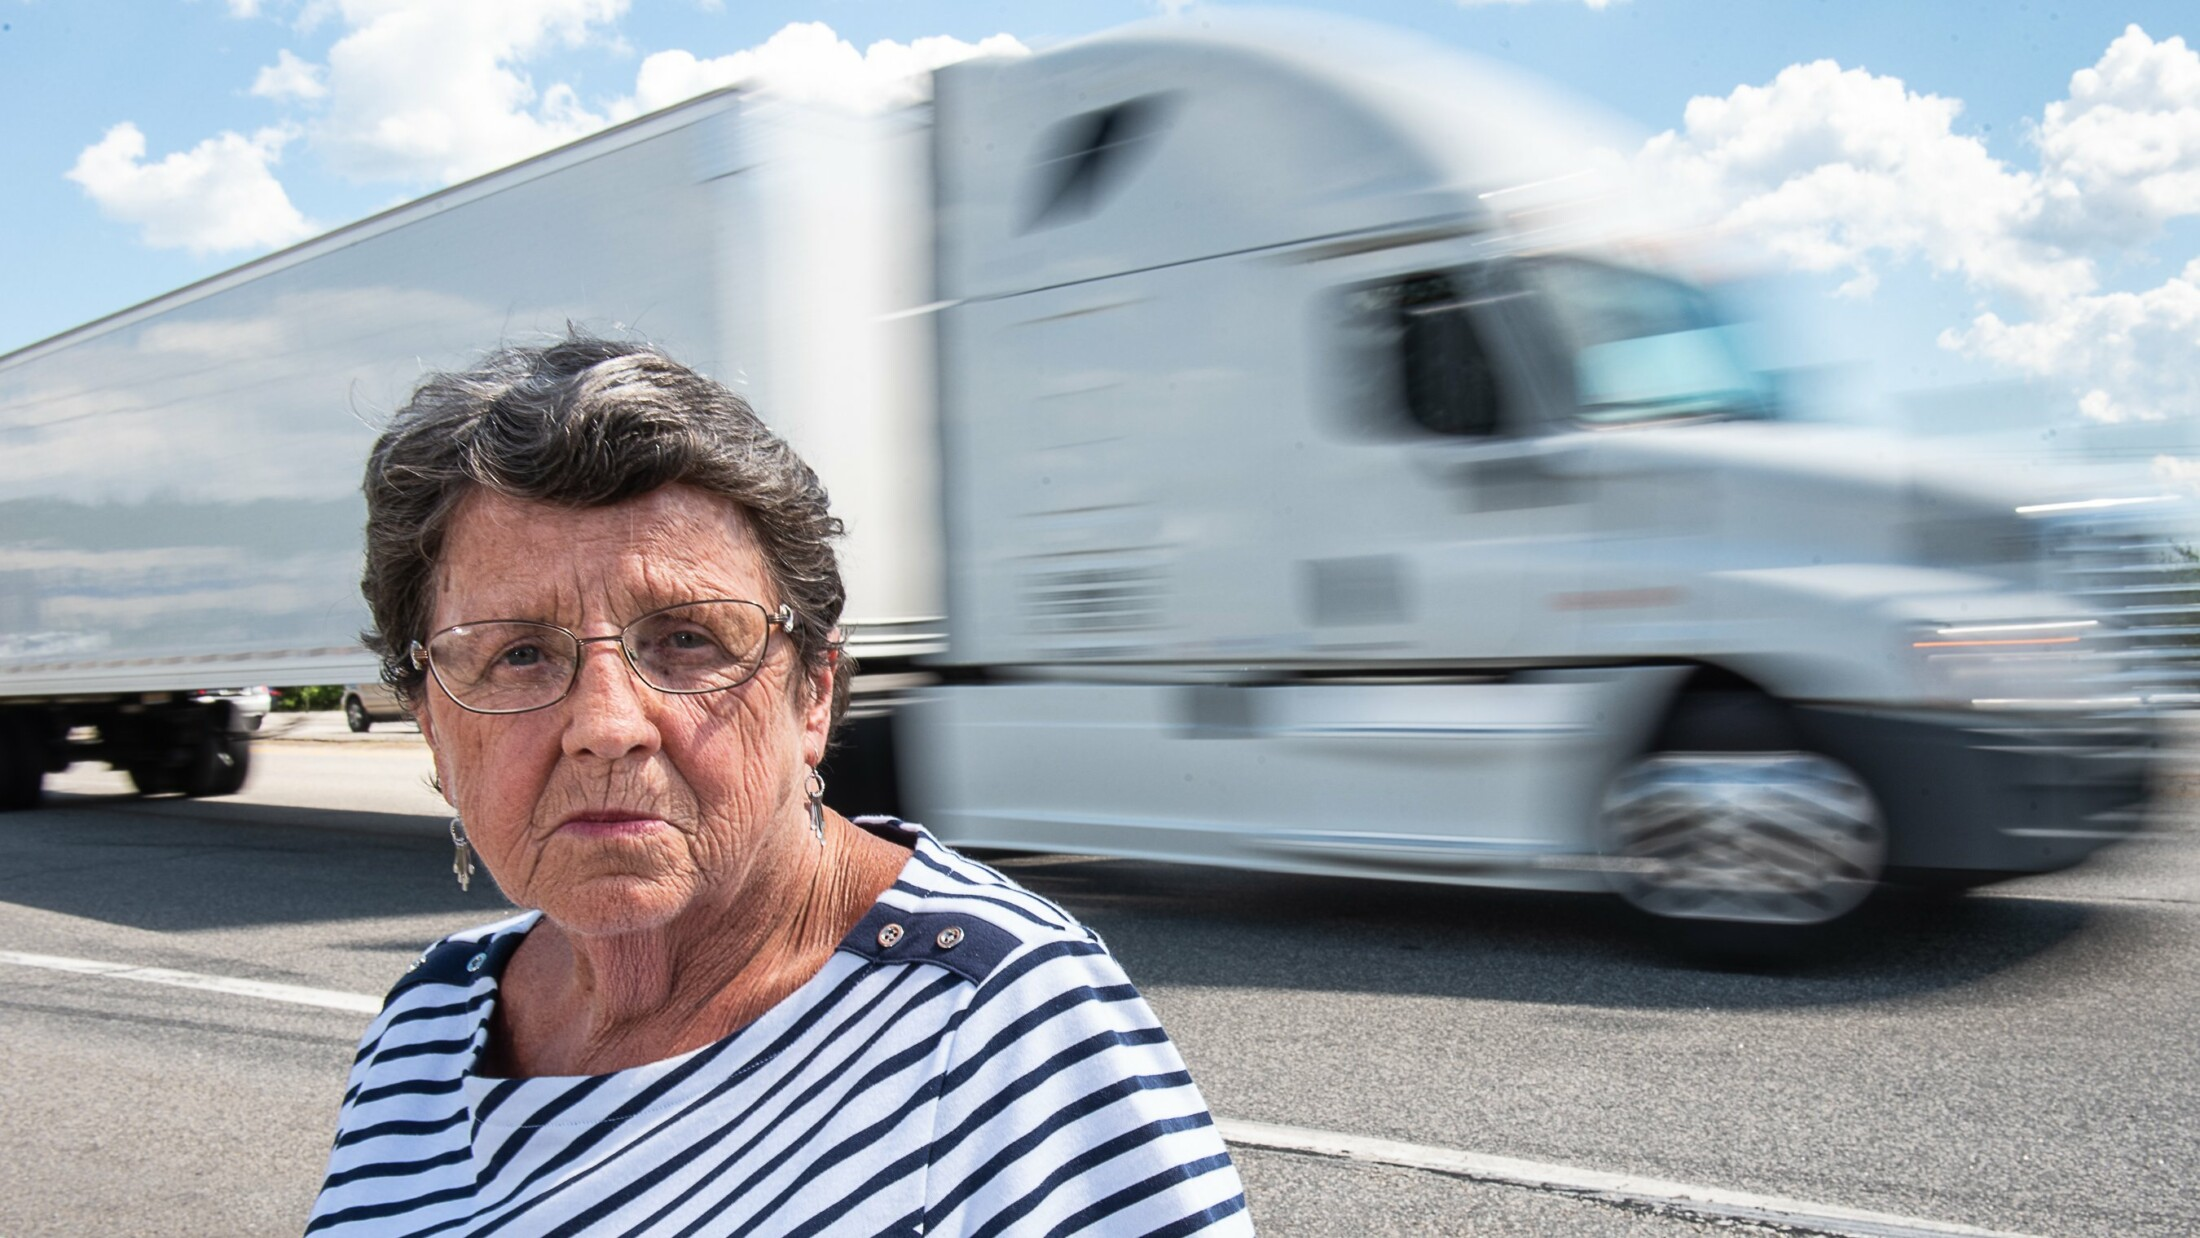 Daphne Izer watches tractor-trailers fly past on their way to the Maine Turnpike at the Auburn interchange Tuesday. Izer started Parents Against Tired Truckers in 1994, after her son and three of his friends were killed when a truck driver fell asleep and hit their car in the breakdown lane on the Maine Turnpike.